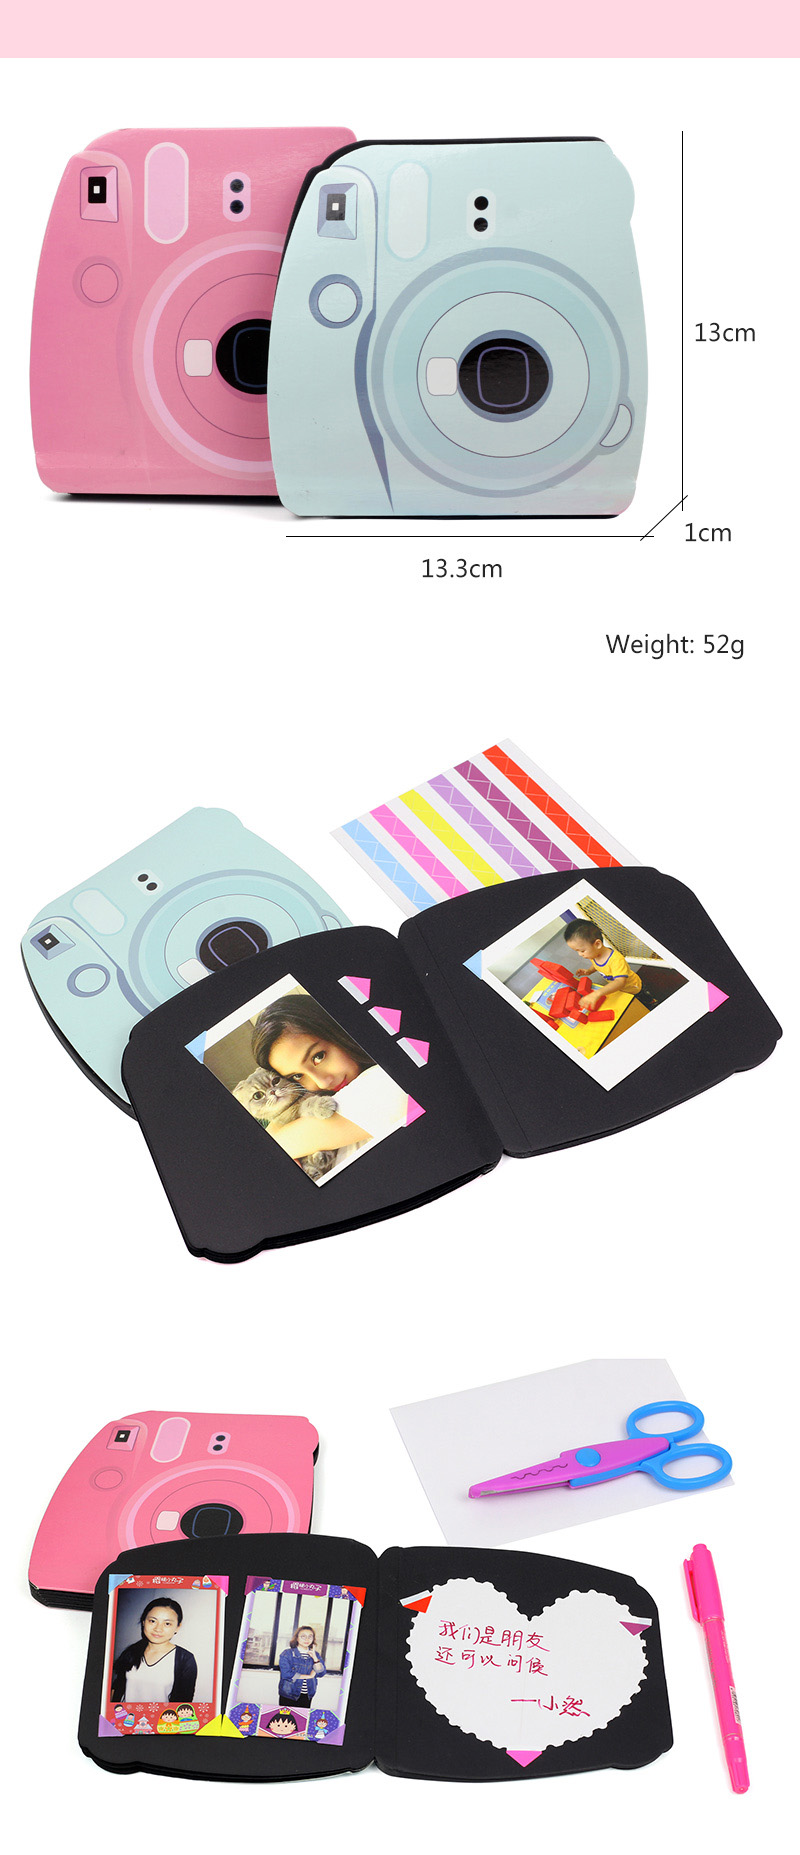 Camera Shape Diy Photo Album